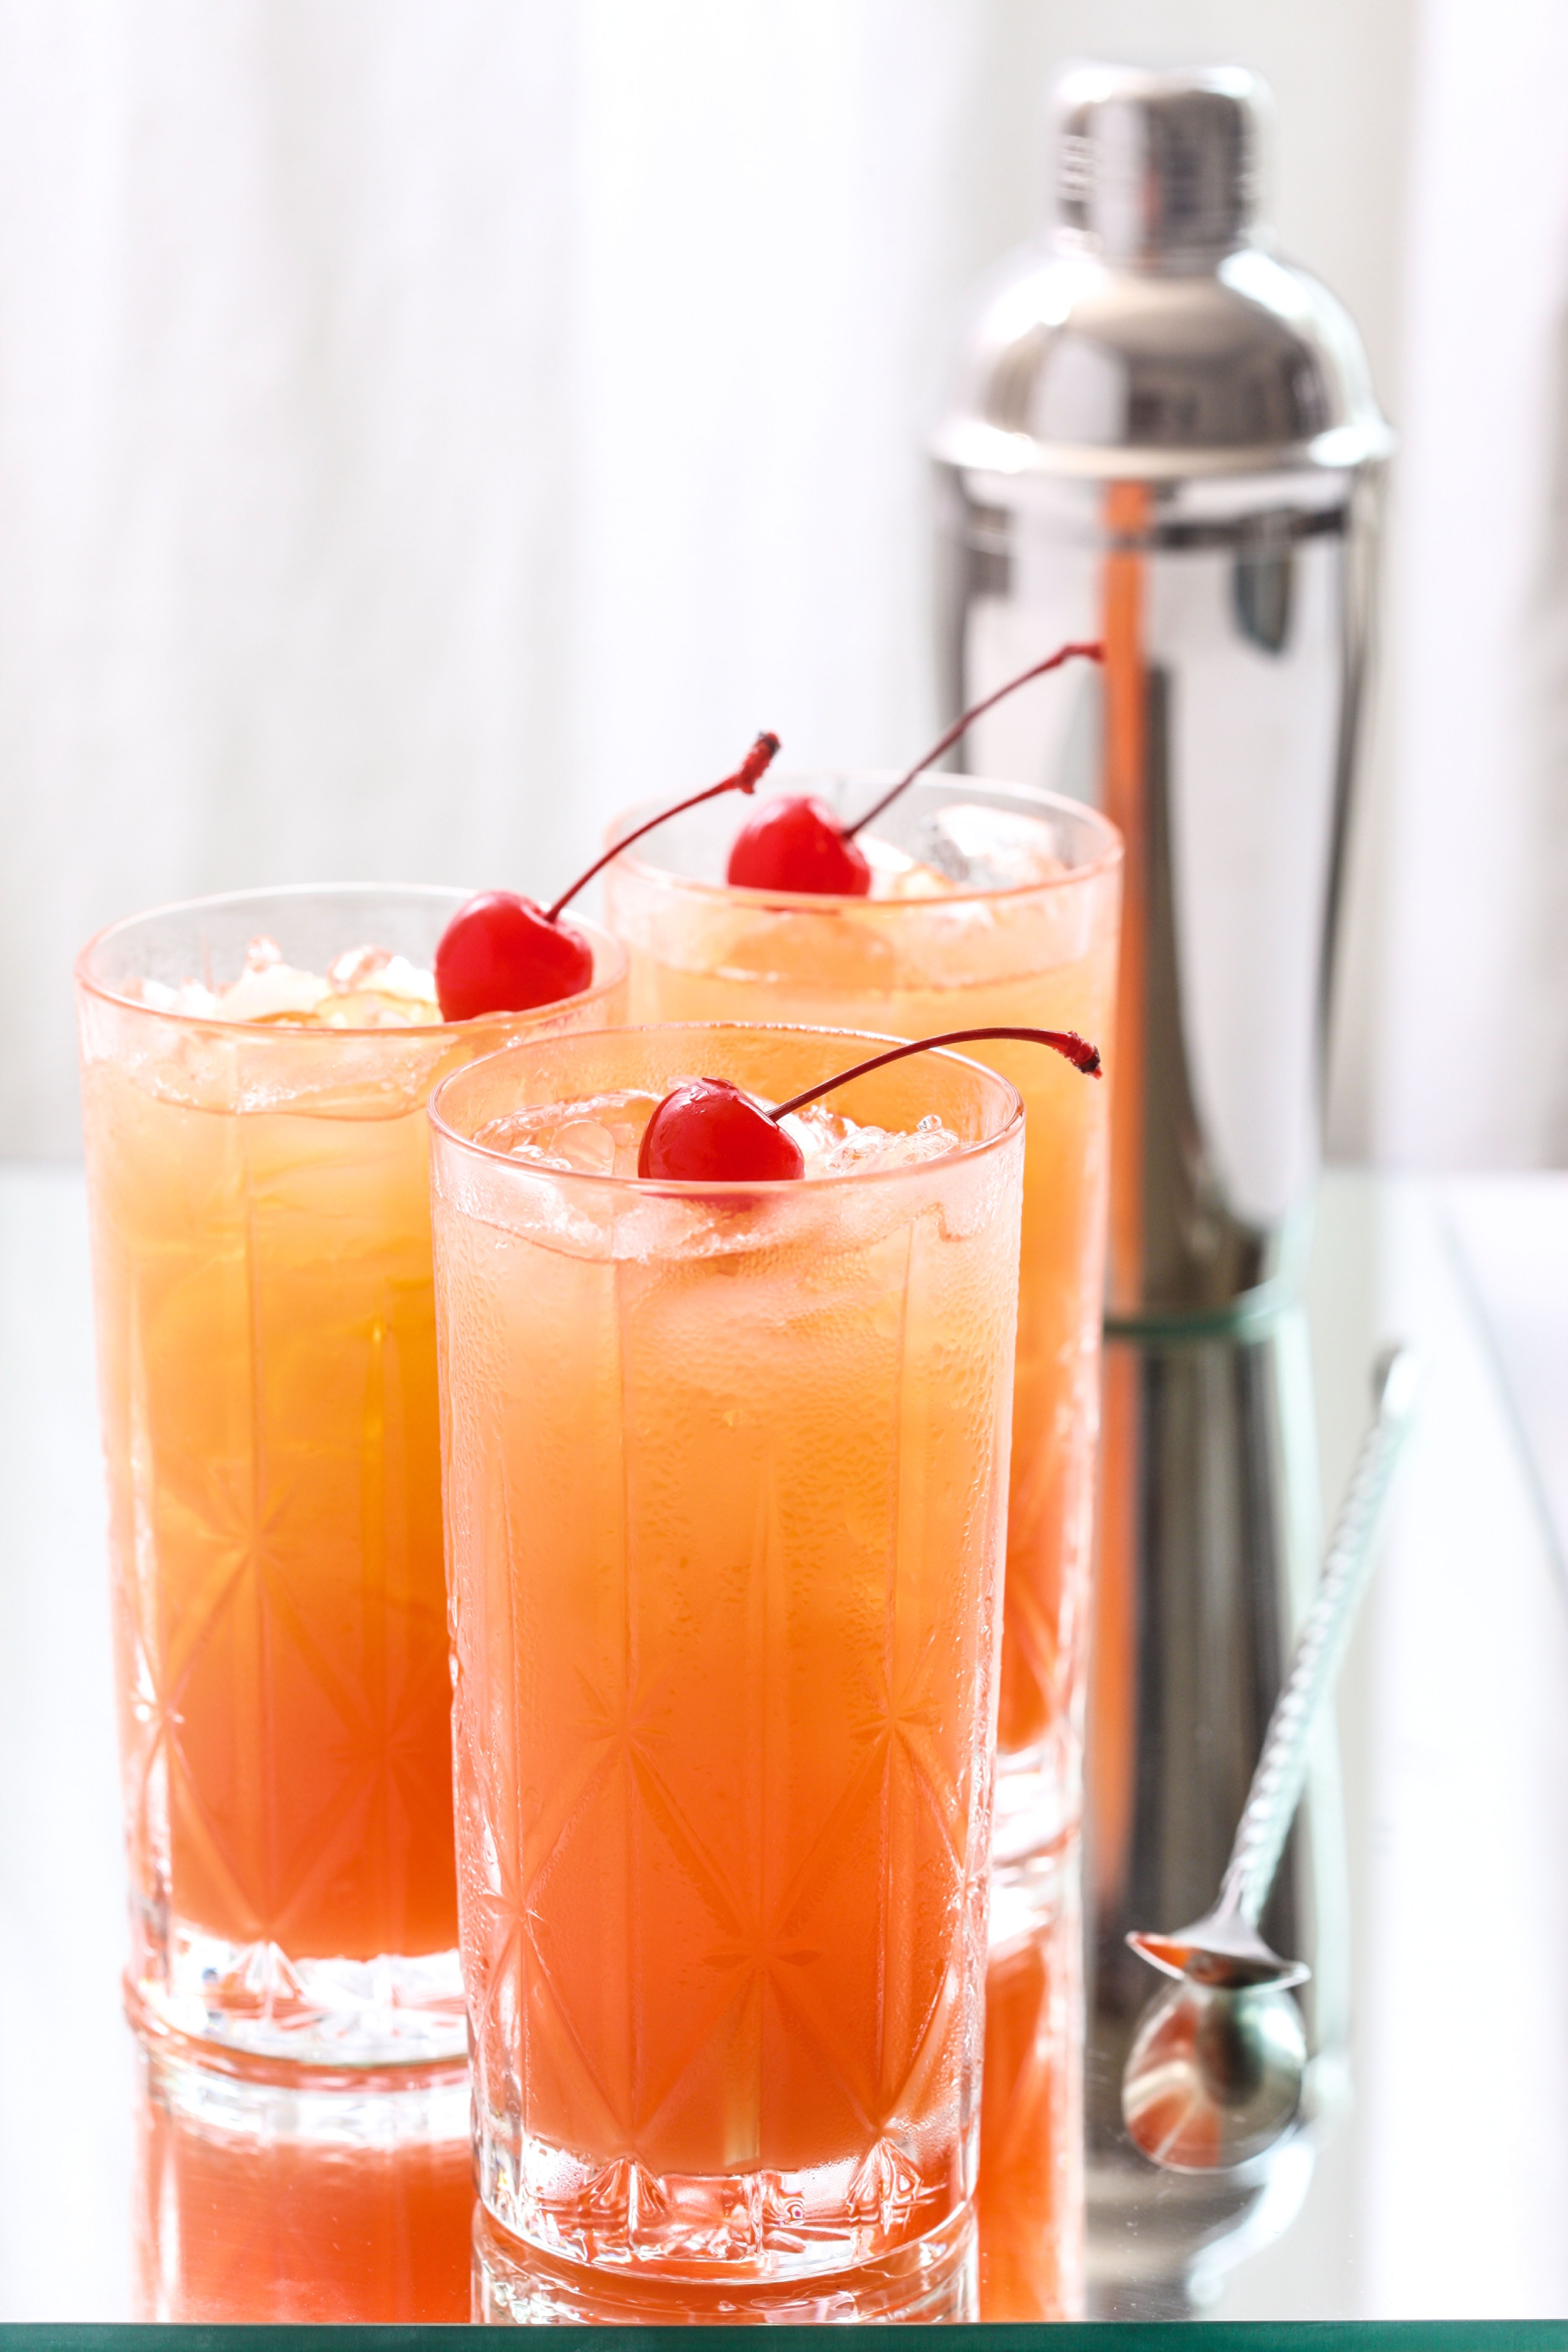 Dream Views - Rose 1.5 oz. Twenty Grand Vodka infused with Rose'